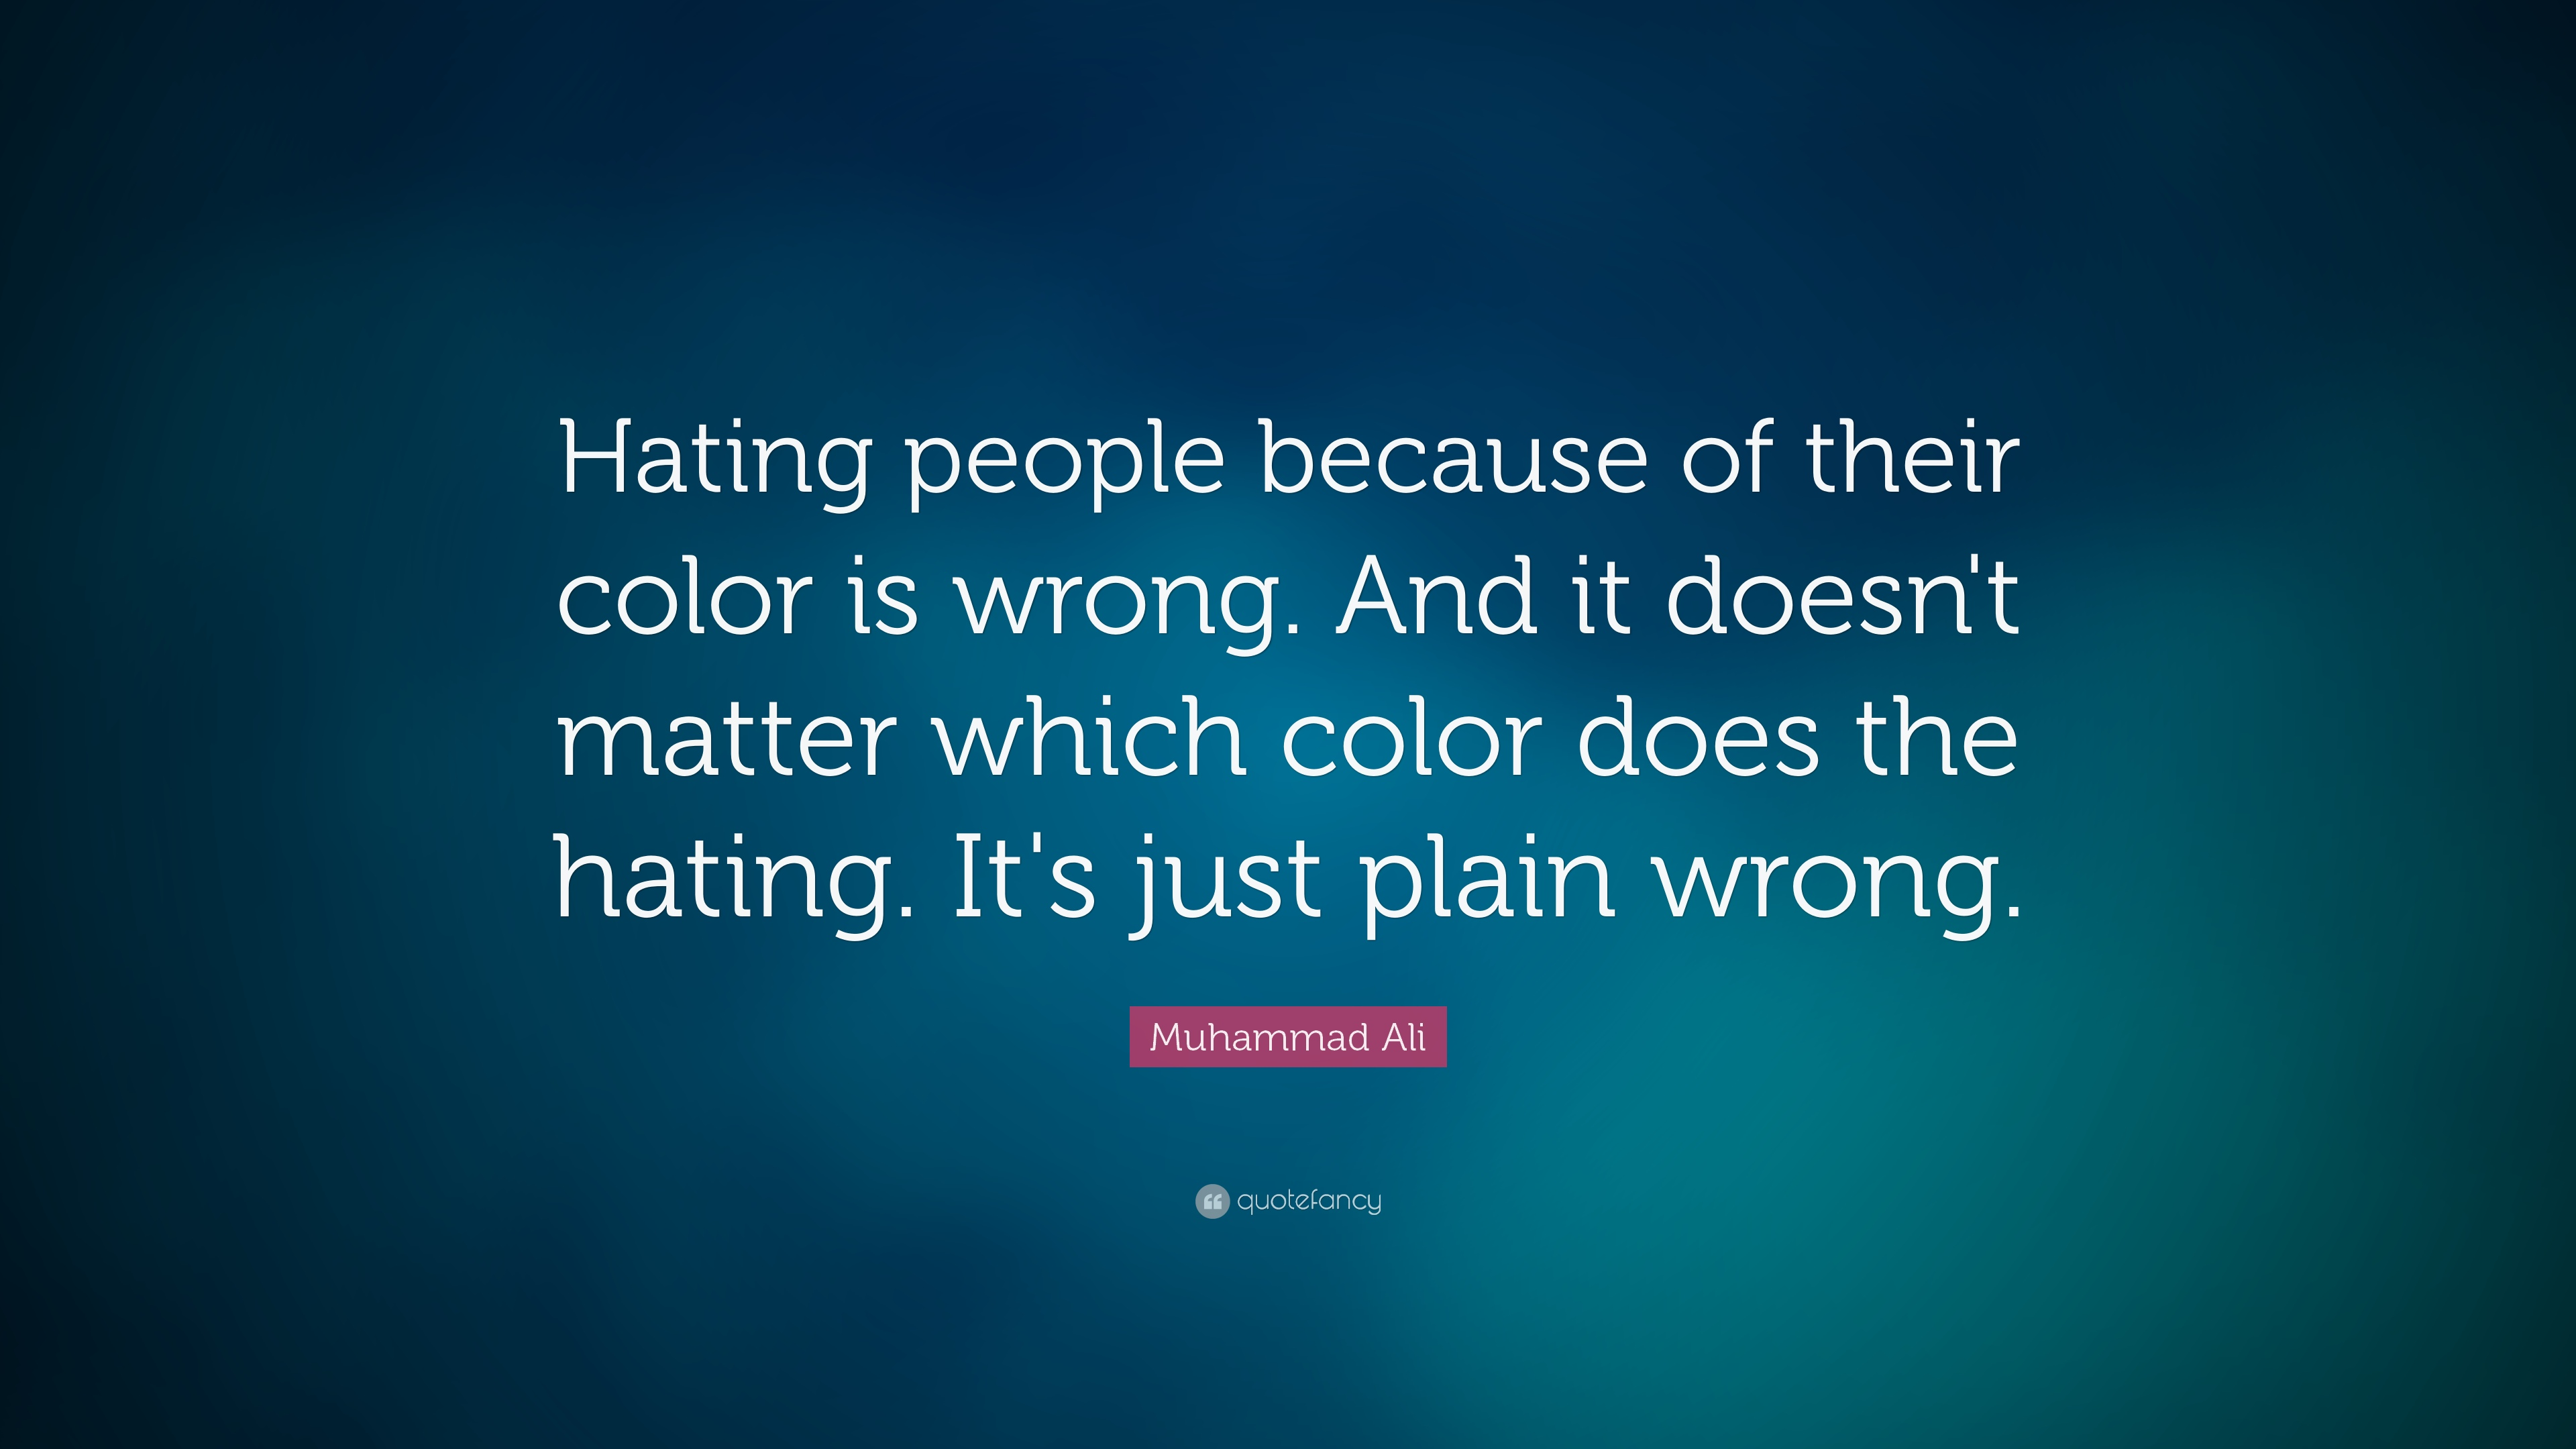 """ Hating people because of their color is wrong. And it doesn't matter which color does the hating. It's just plain wrong."" ― Muhammad Ali [3840×2160]"